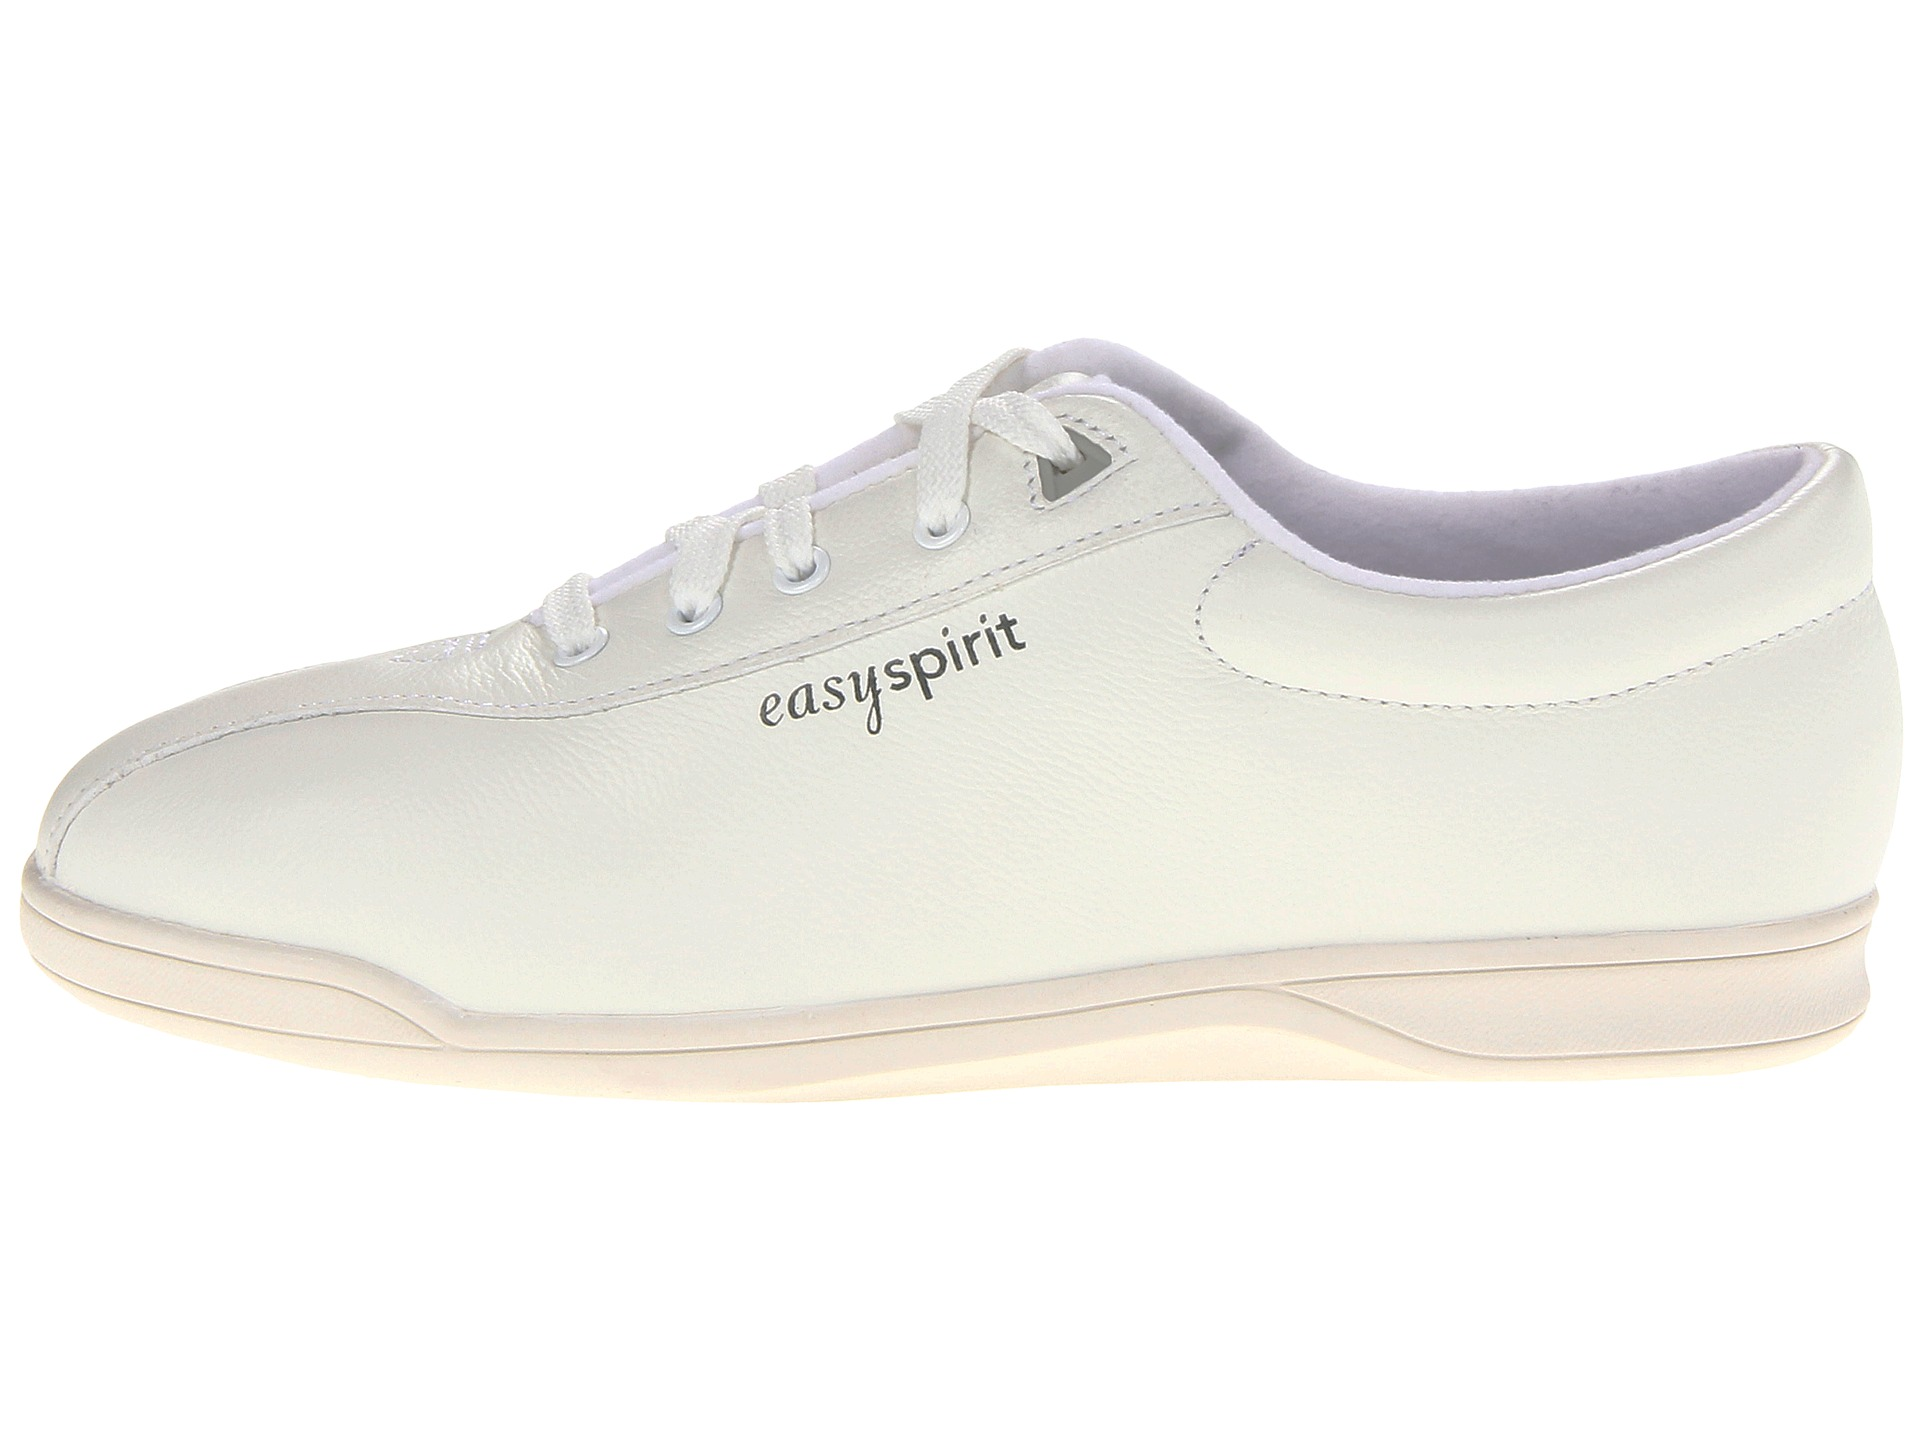 Easy Spirit E Shoes Reviews